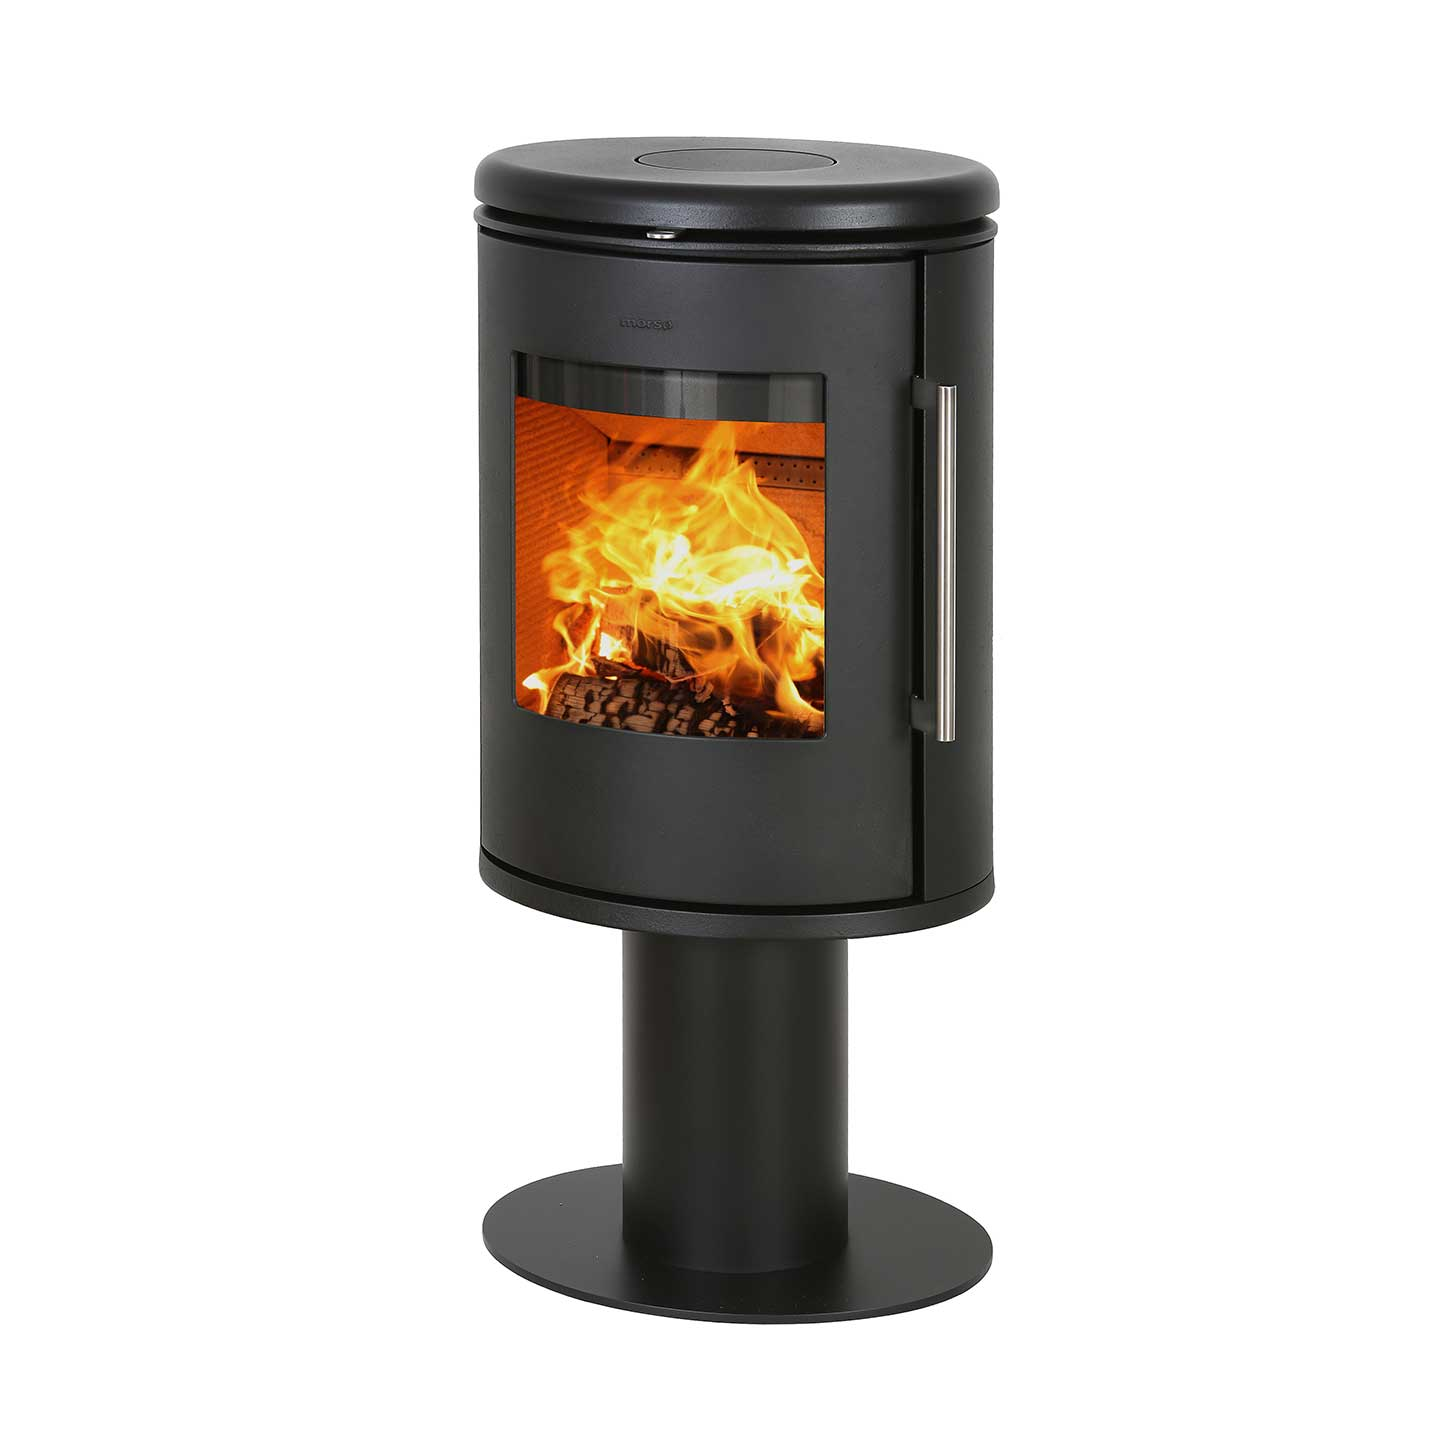 Morso 6848 Wood Burning Stove The Stove Site Approved